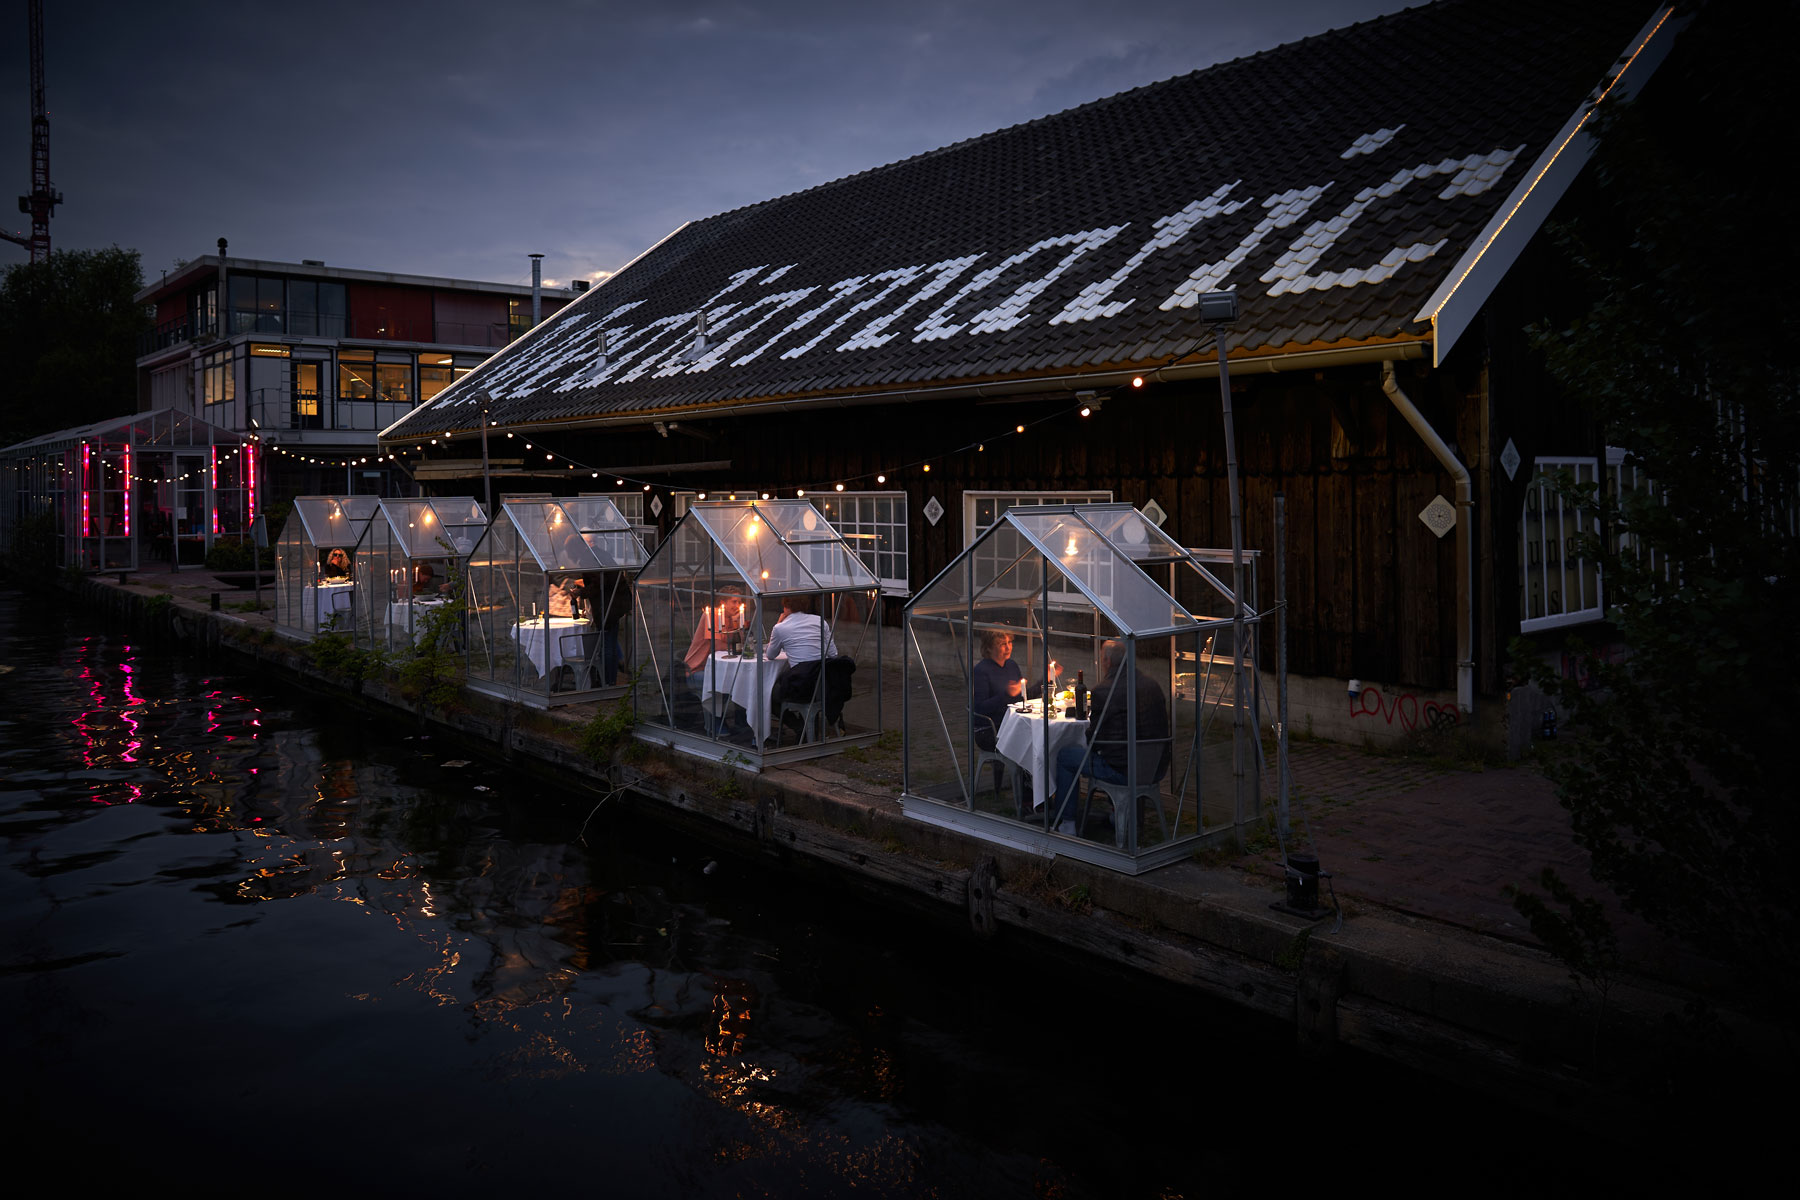 Amsterdam Restaurant Is Putting Tables in Individual Greenhouses 2